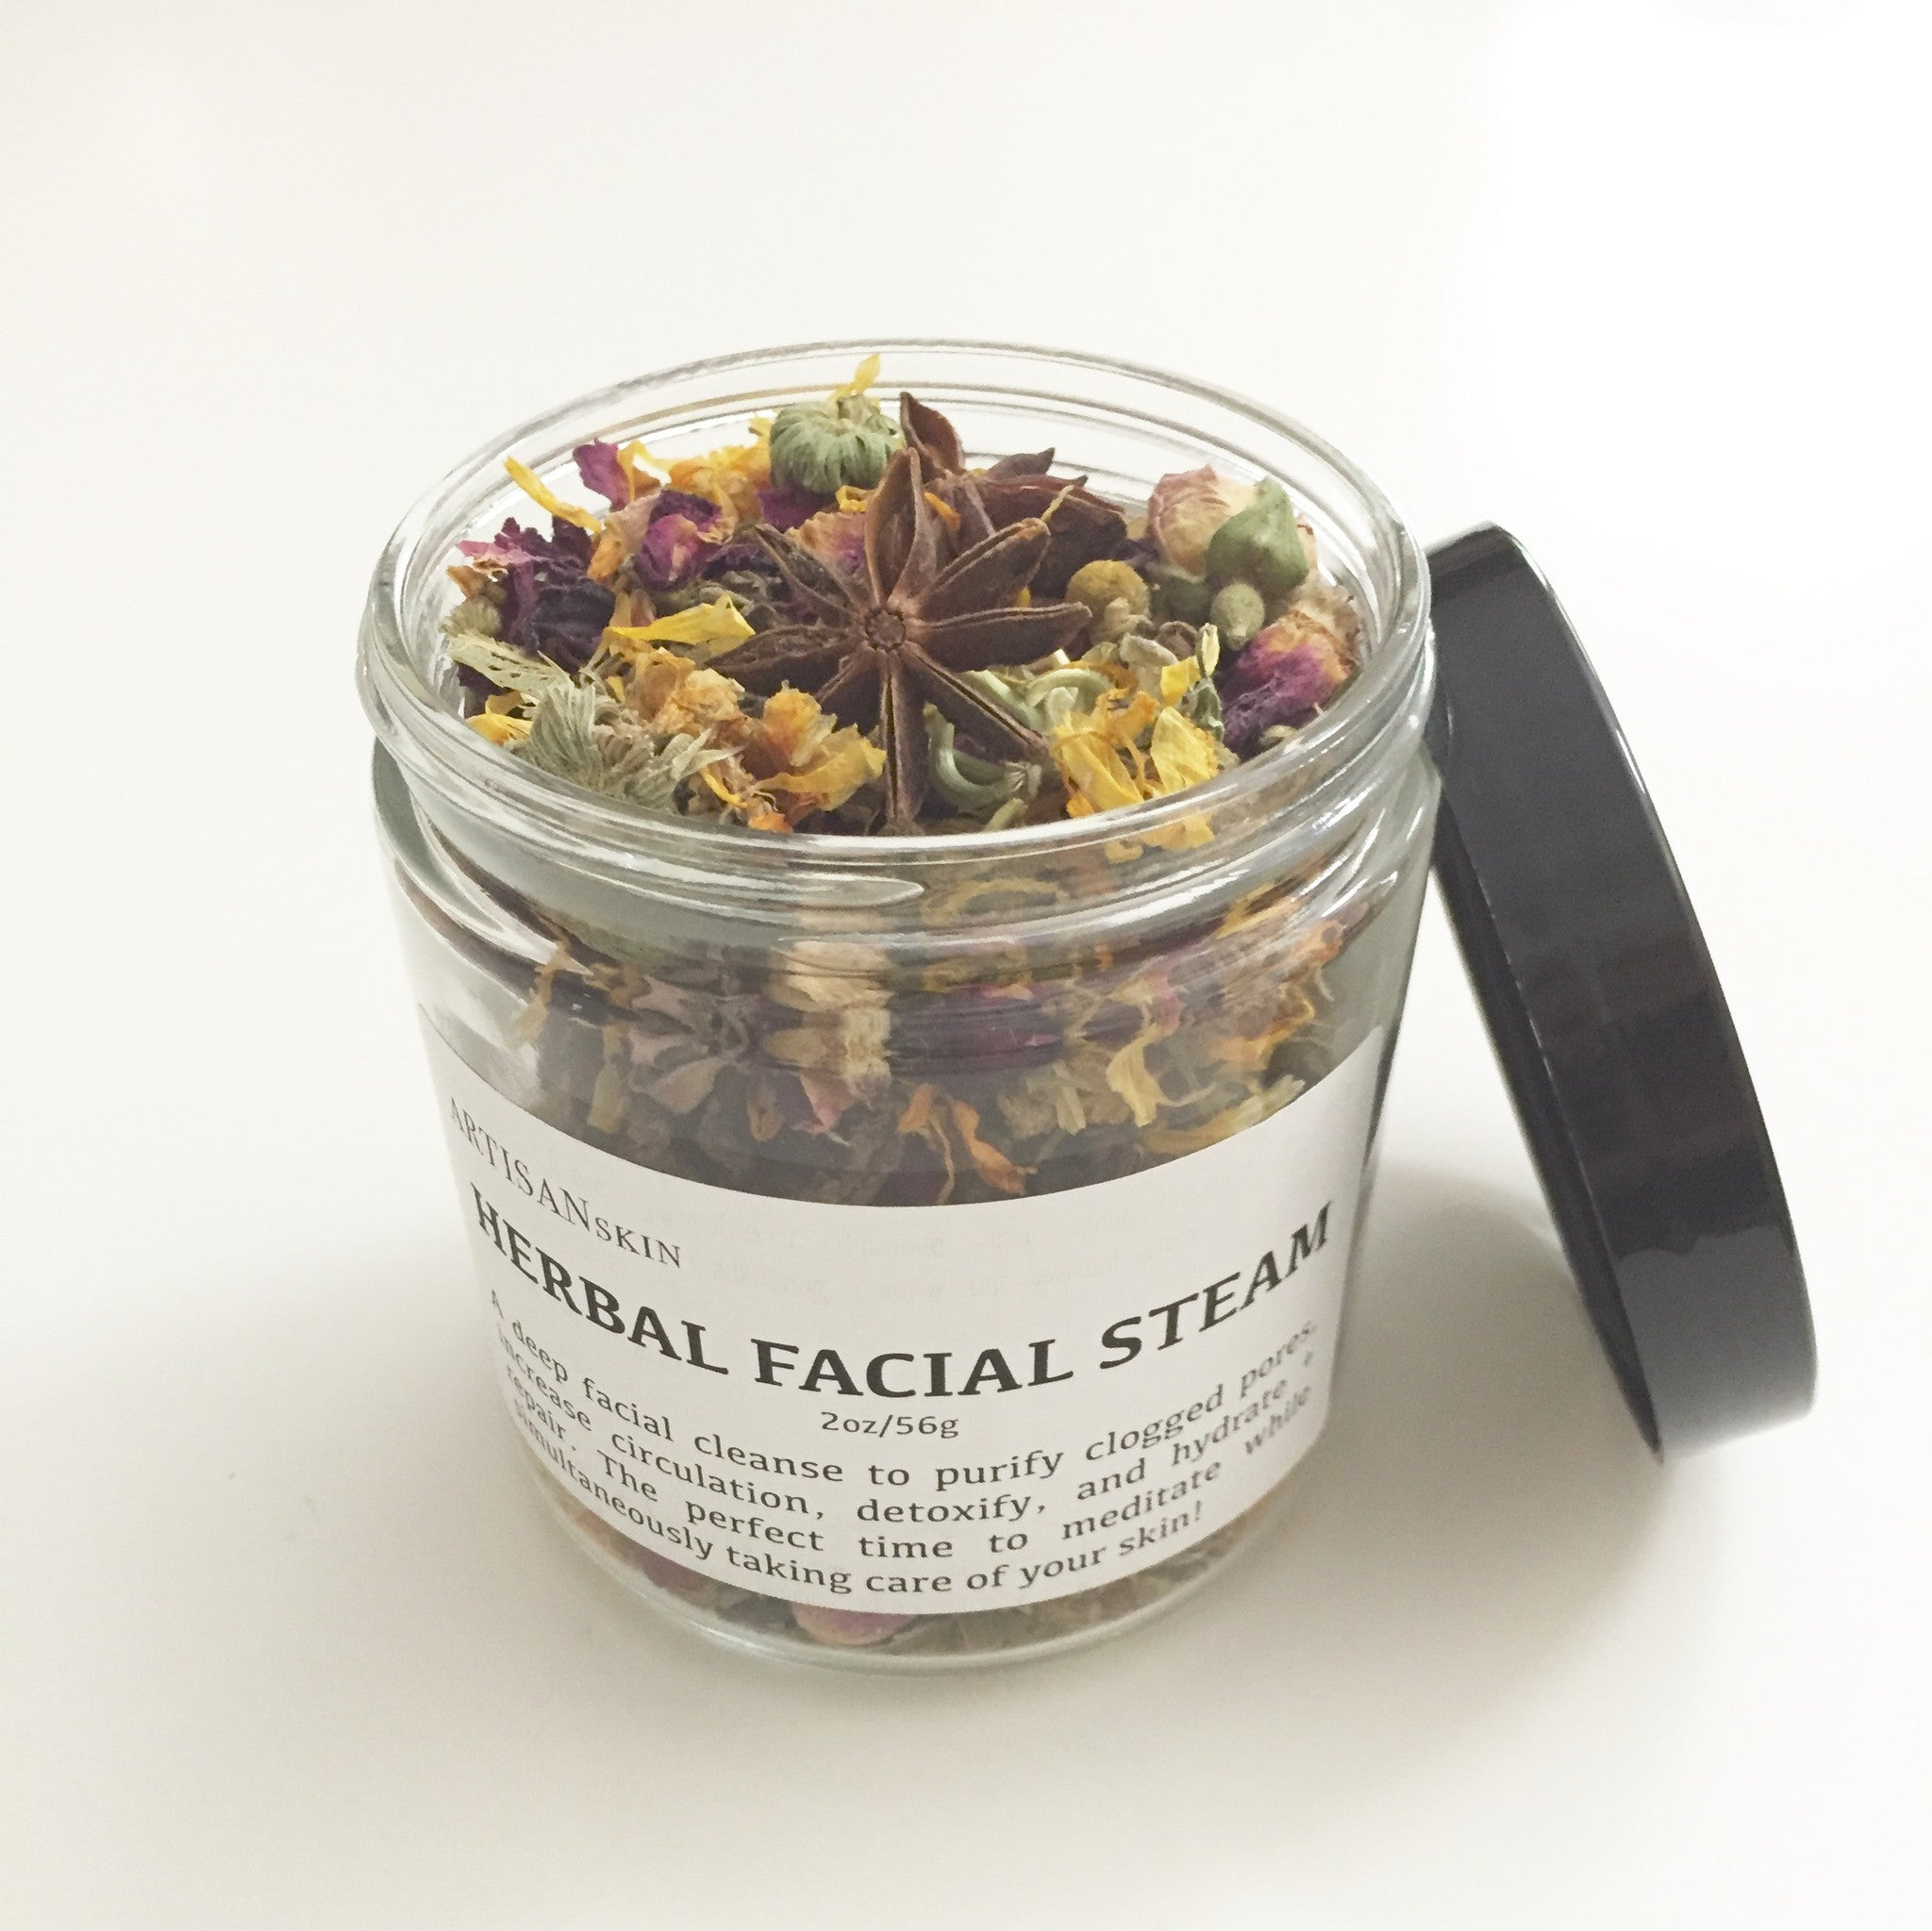 Herbal Facial Steam